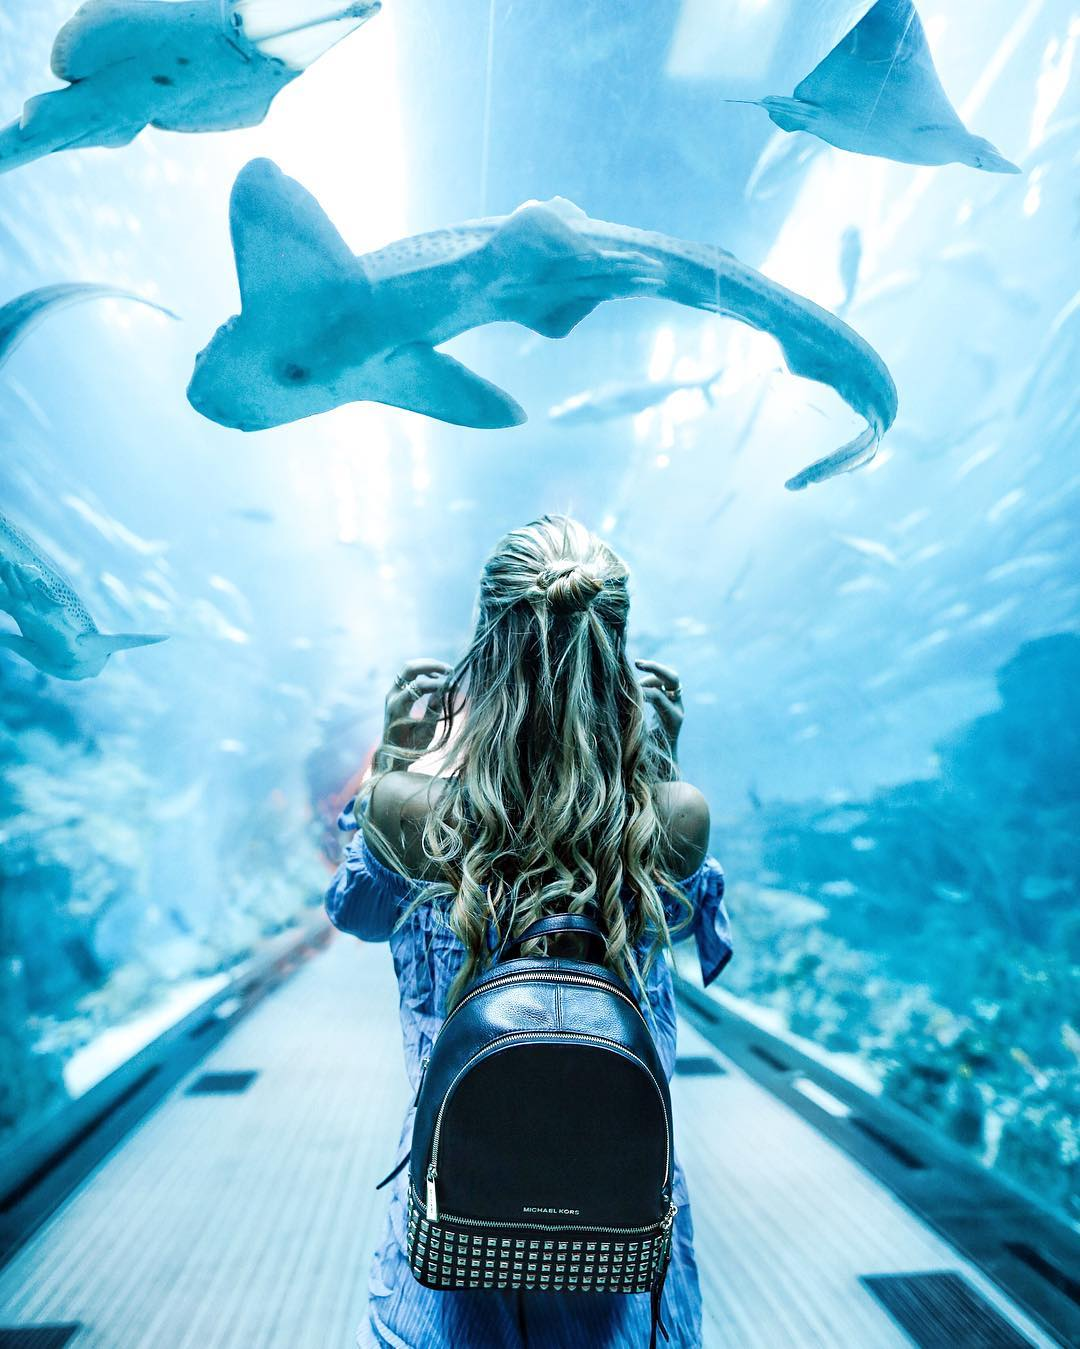 Casual rendezvous with sharks at the Dubai Mall